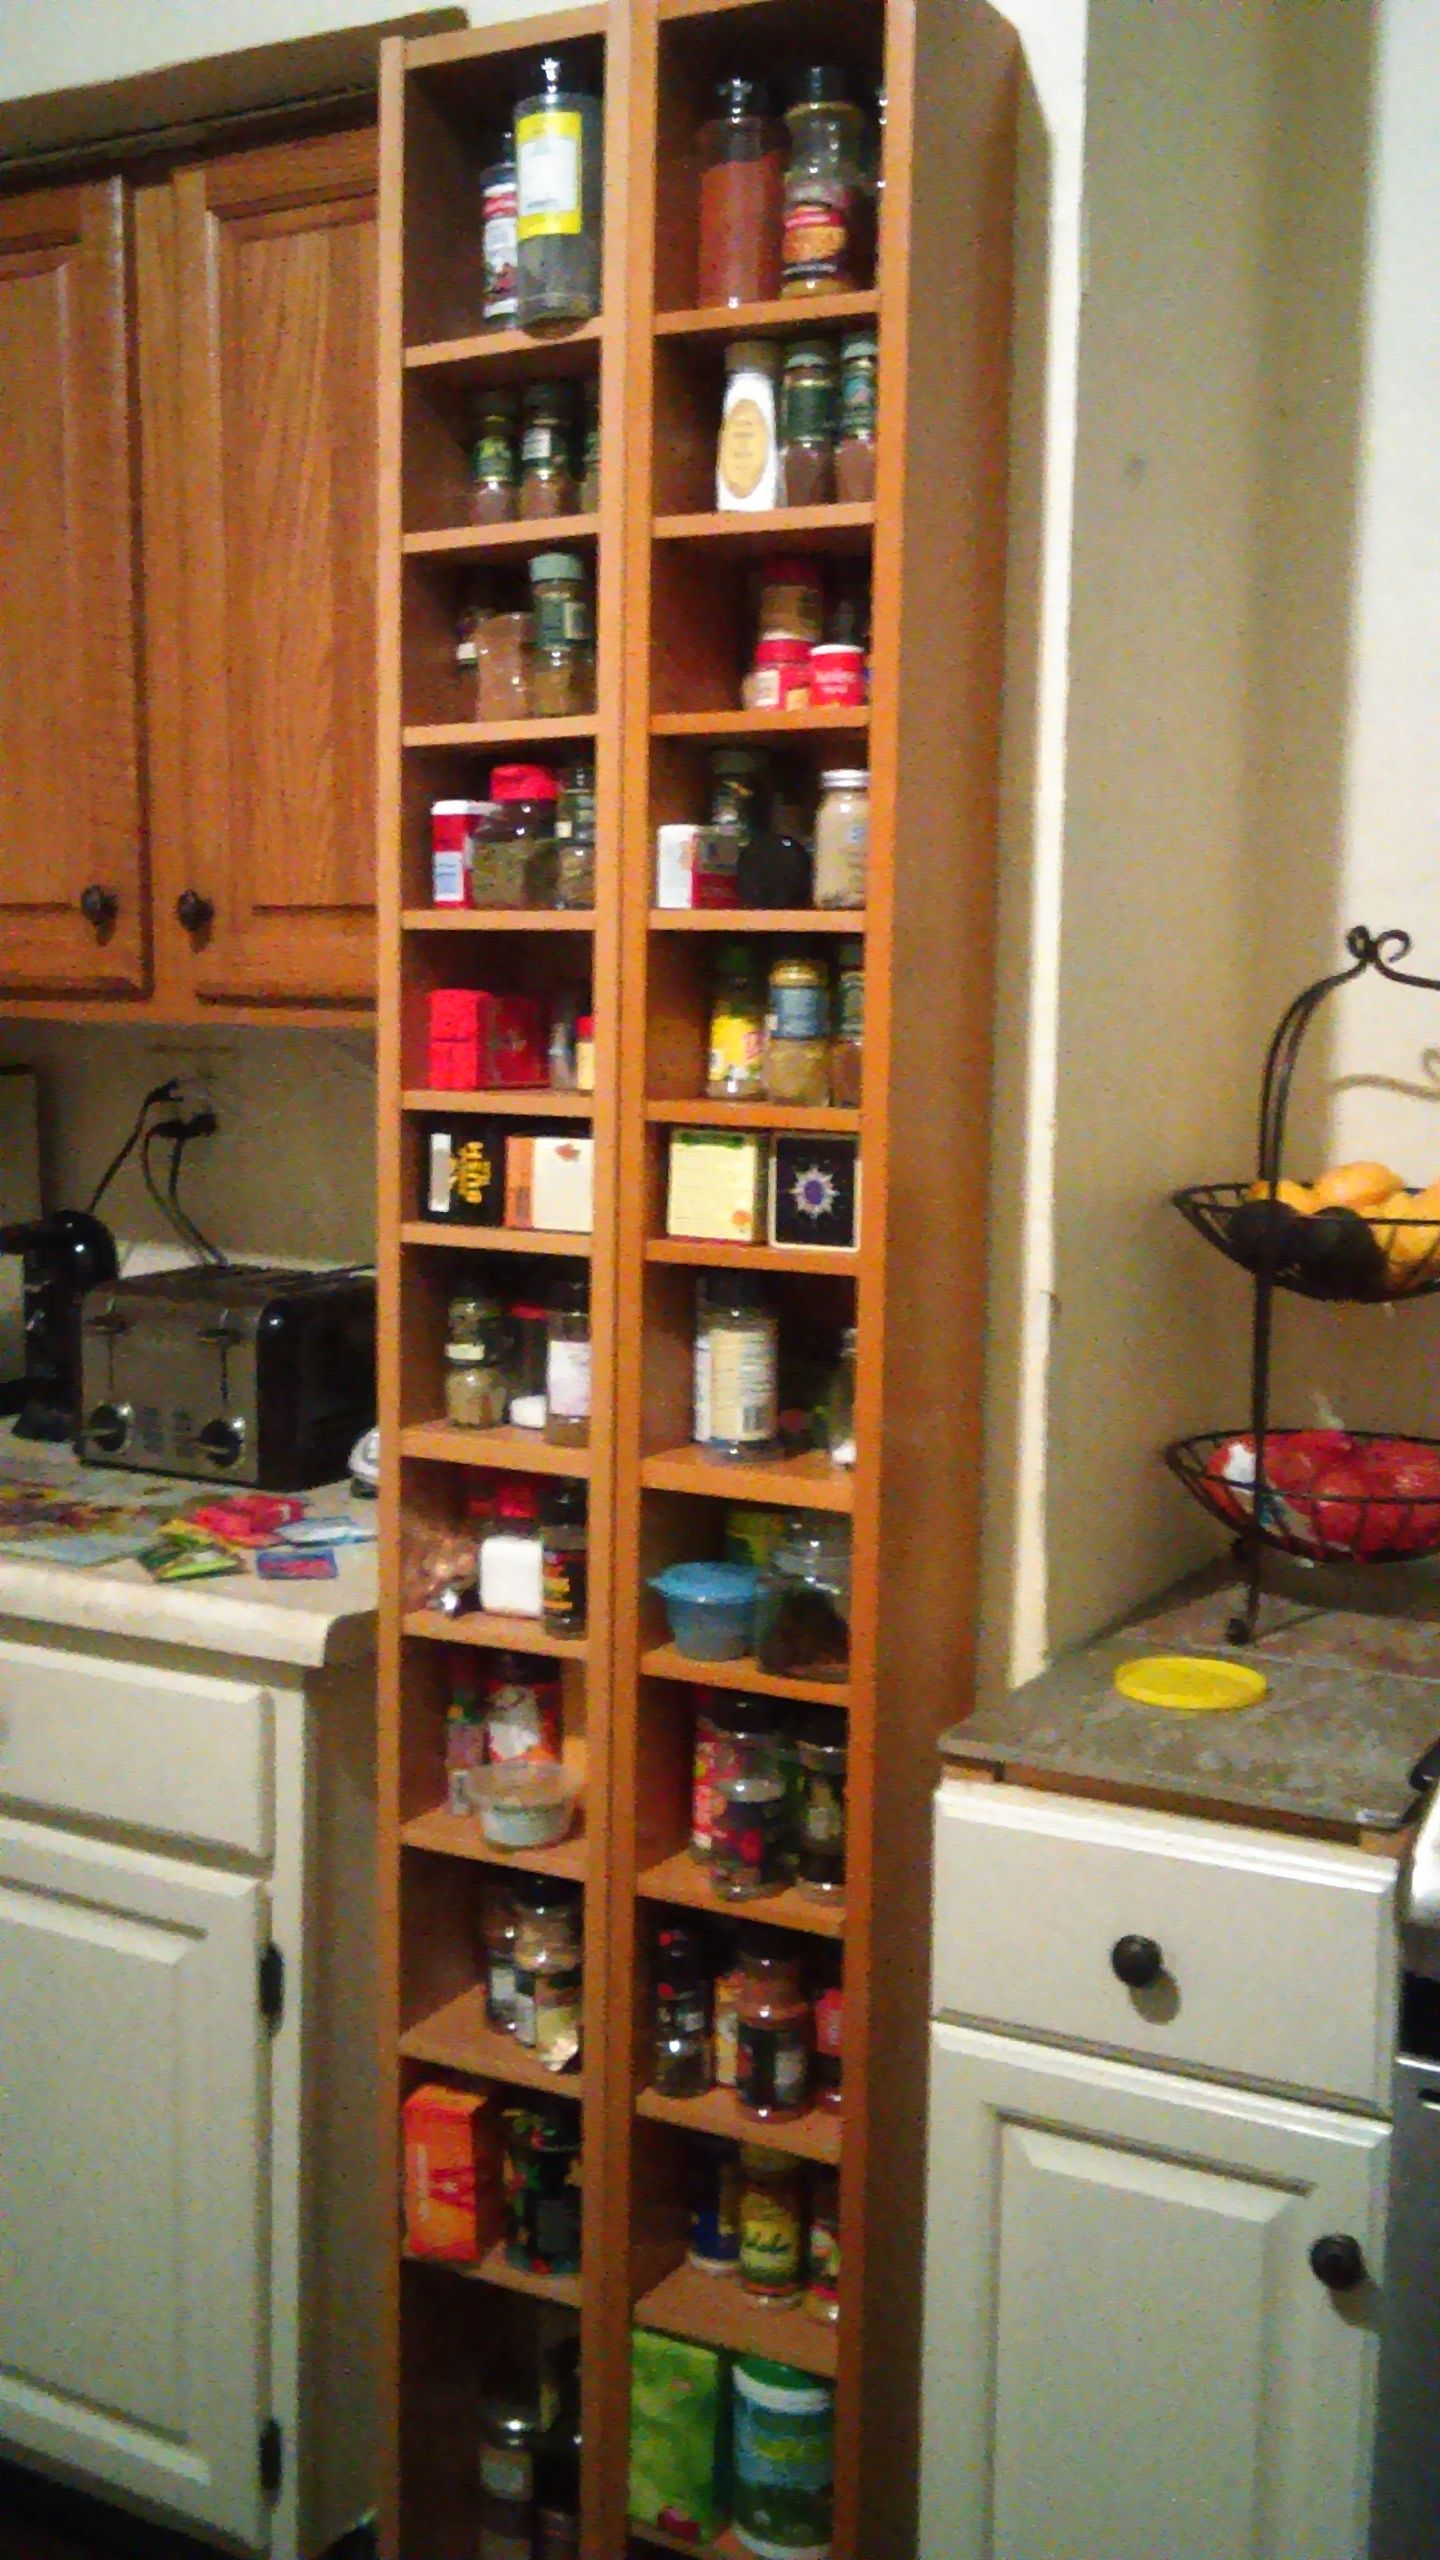 Ikea CD rack used as a spice rack in my kitchen